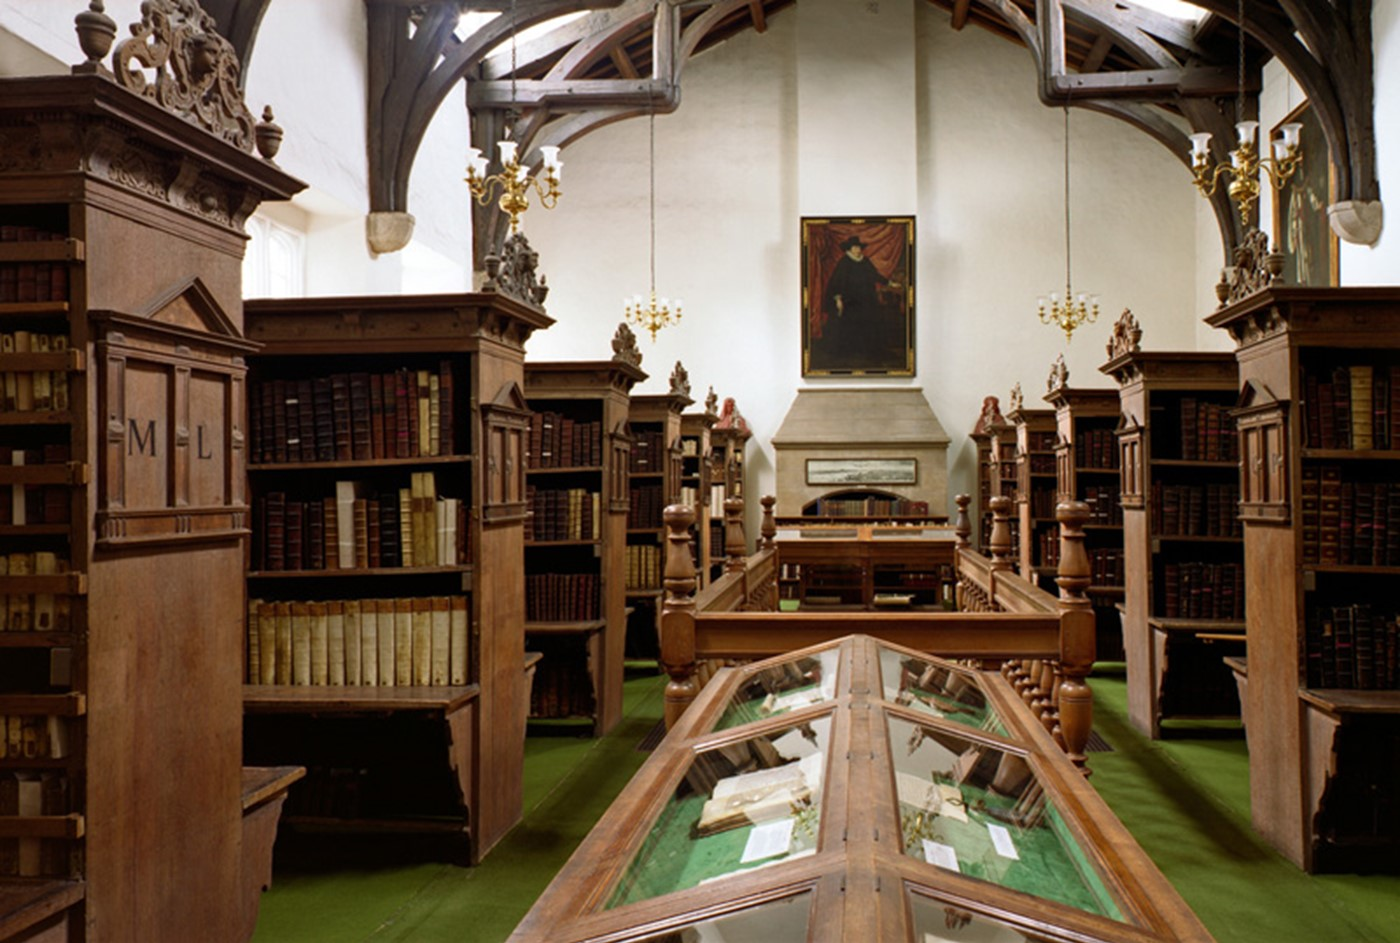 westminster-abbey-library.jpg